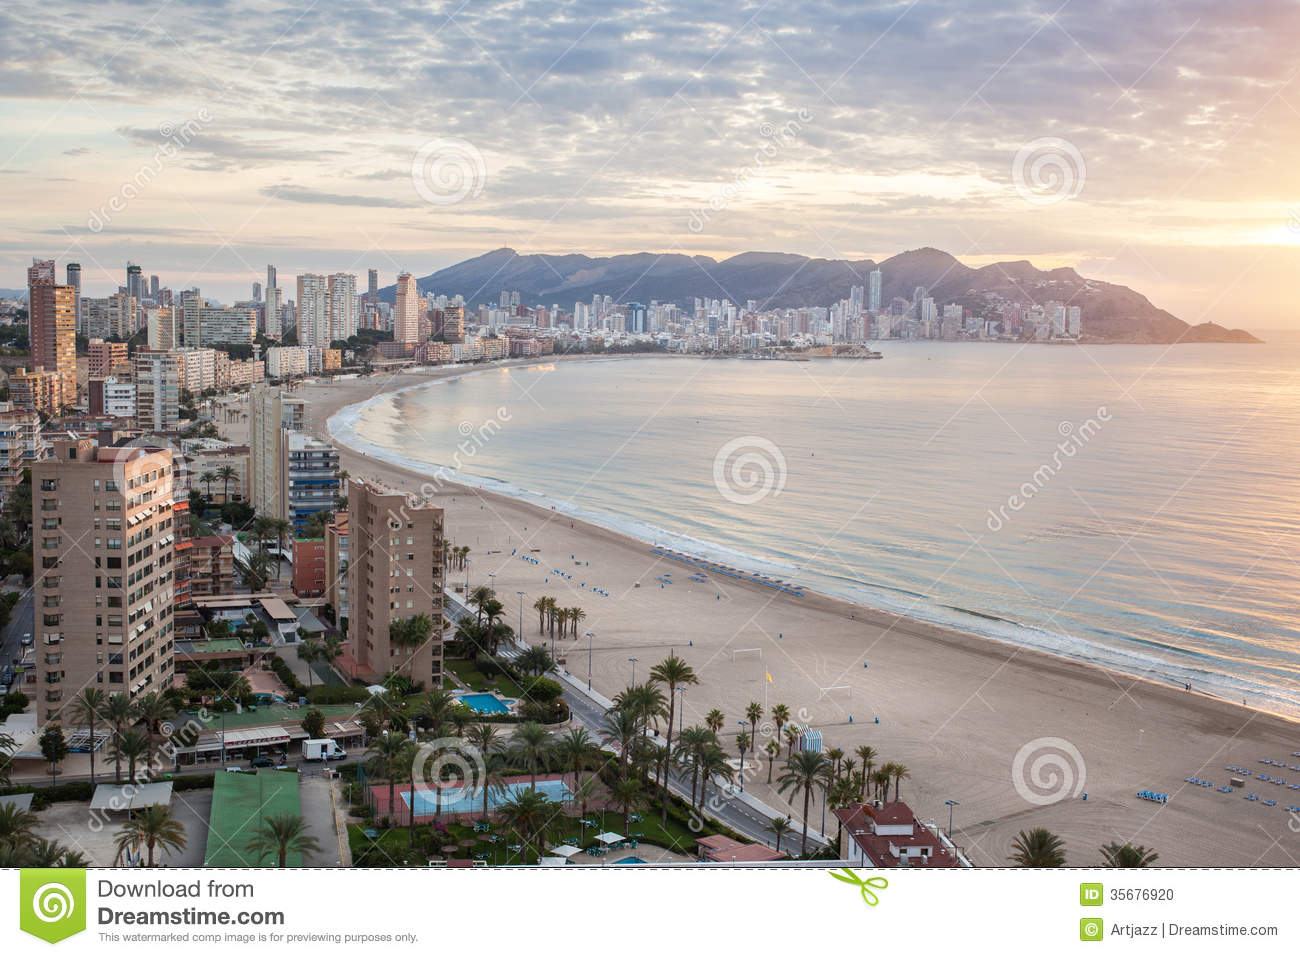 Benidorm - Costa Blanca Spain  city pictures gallery : Benidorm on sunrise, Costa Blanca, Spain.